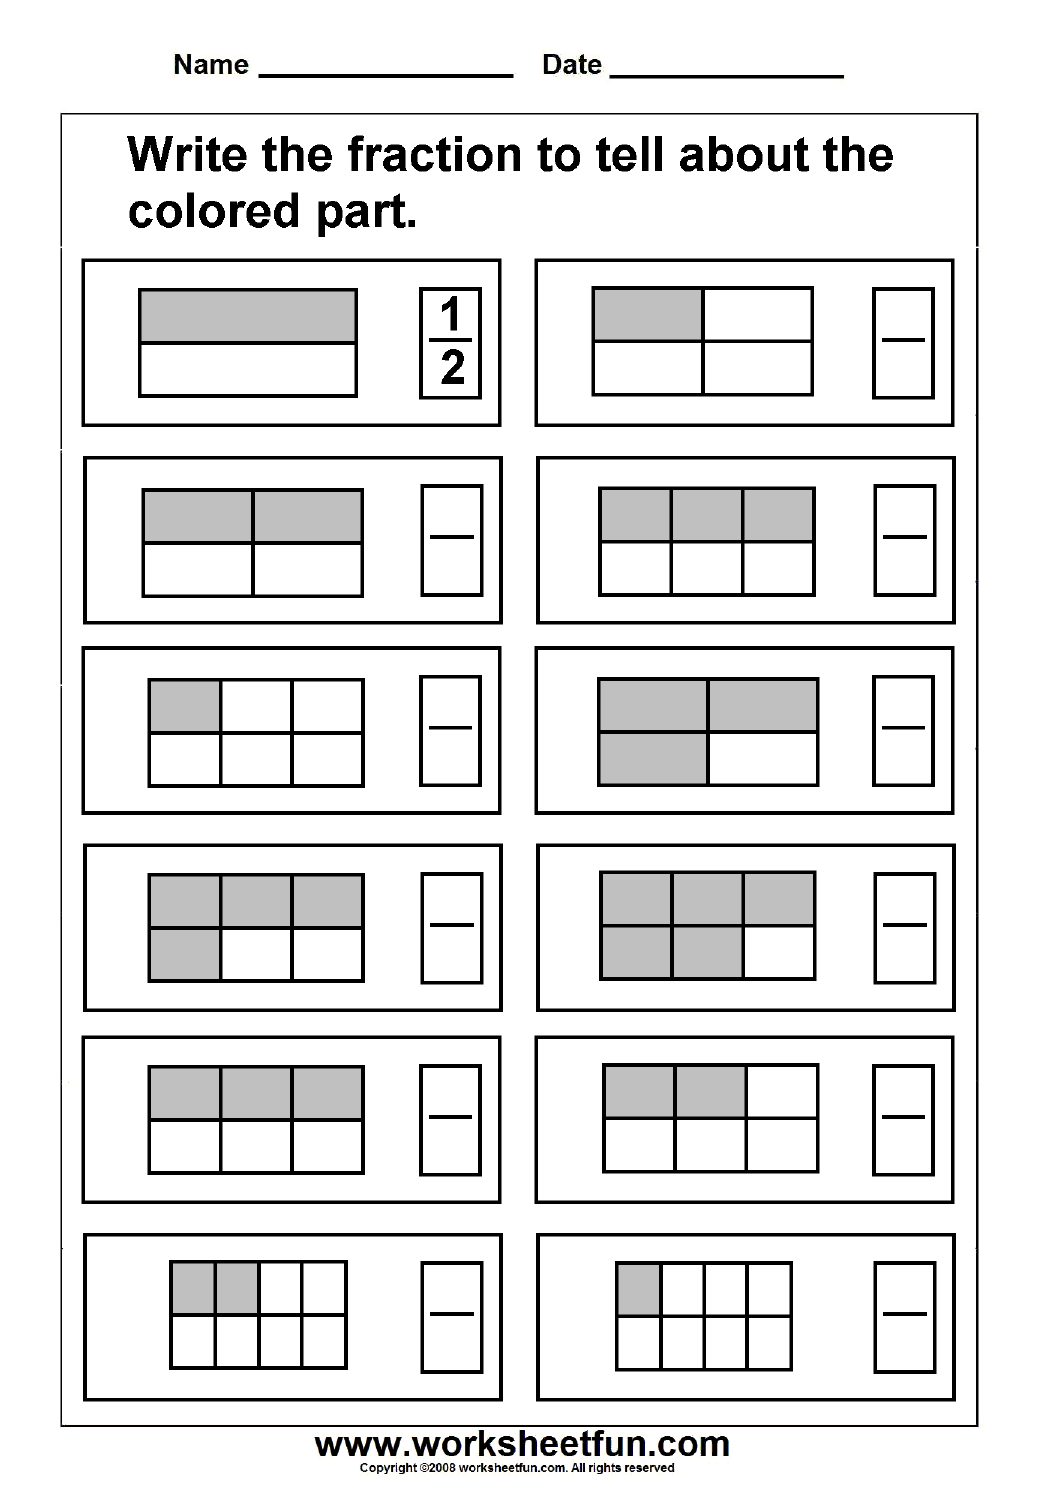 Printable Fraction Activities That Are Gratifying